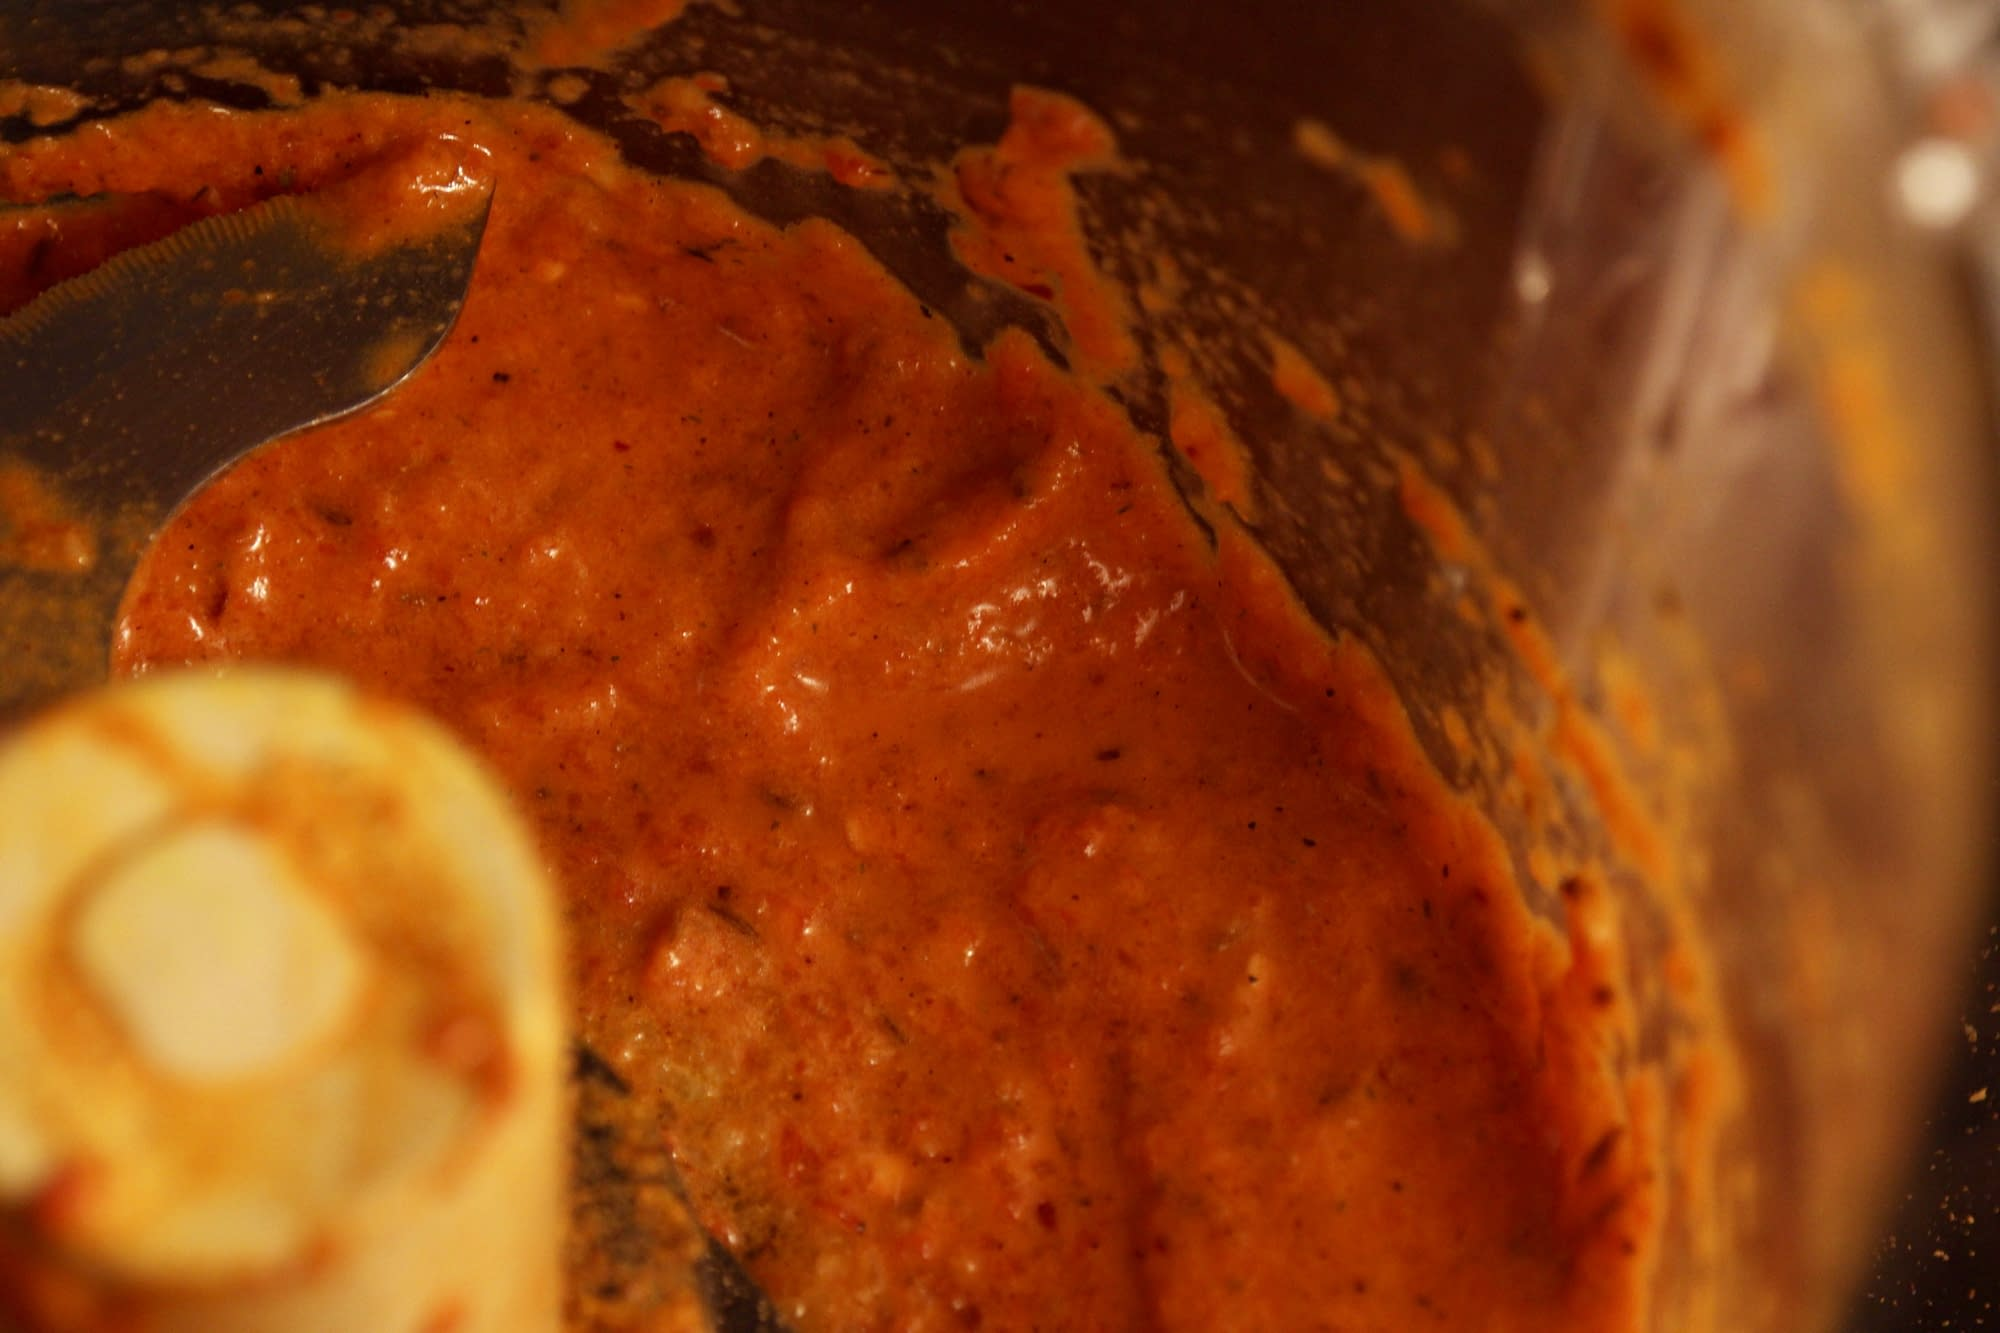 Roasted red pepper sauce in the food processor to top the roasted tofu, white beans, and kale